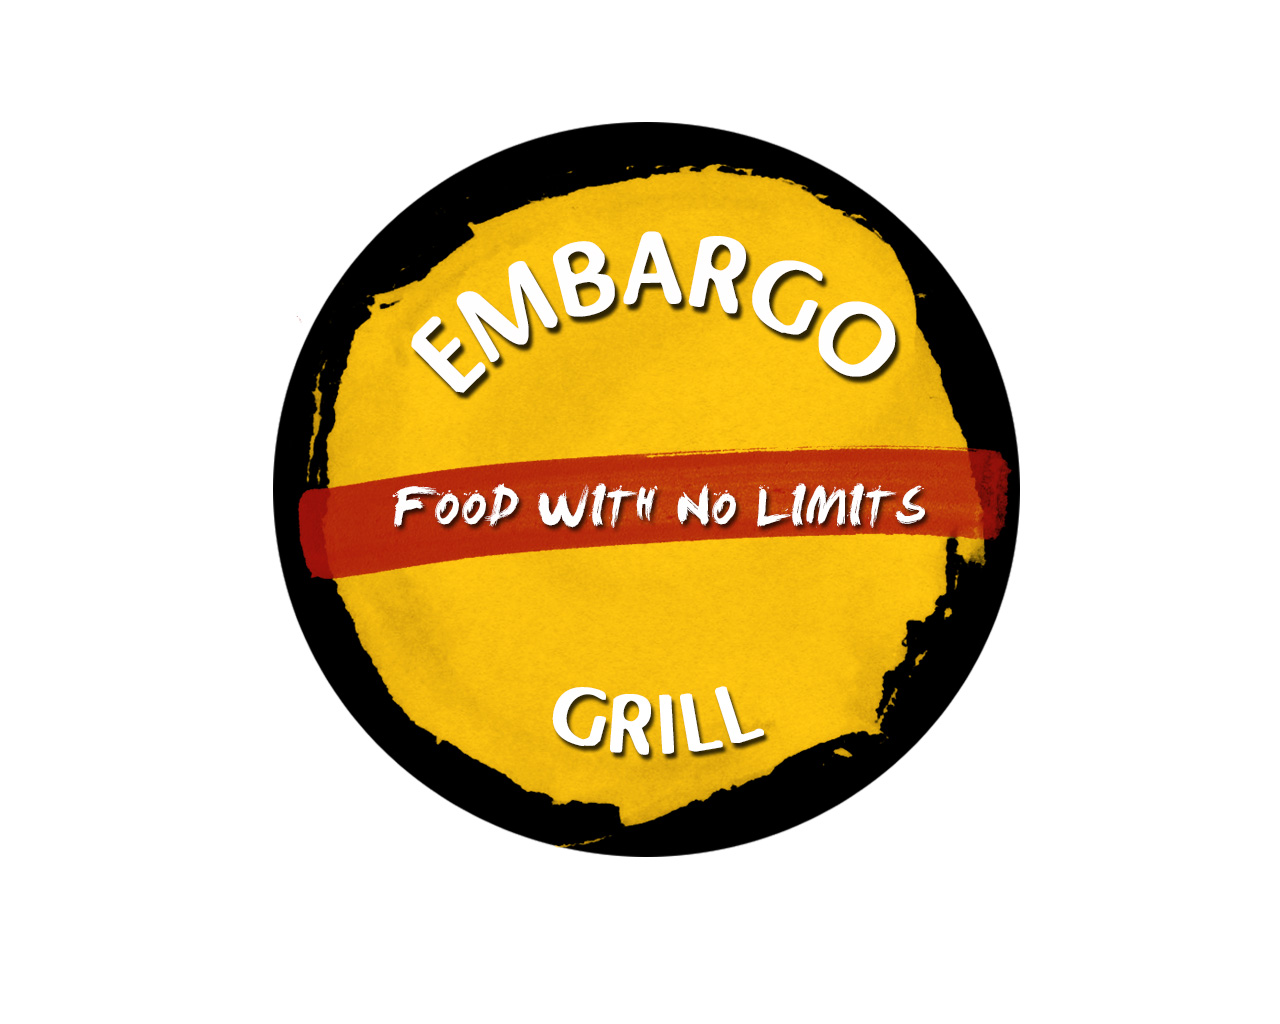 Logo Design by Ioanna Rokka - Entry No. 51 in the Logo Design Contest Captivating Logo Design for Embargo Grill.